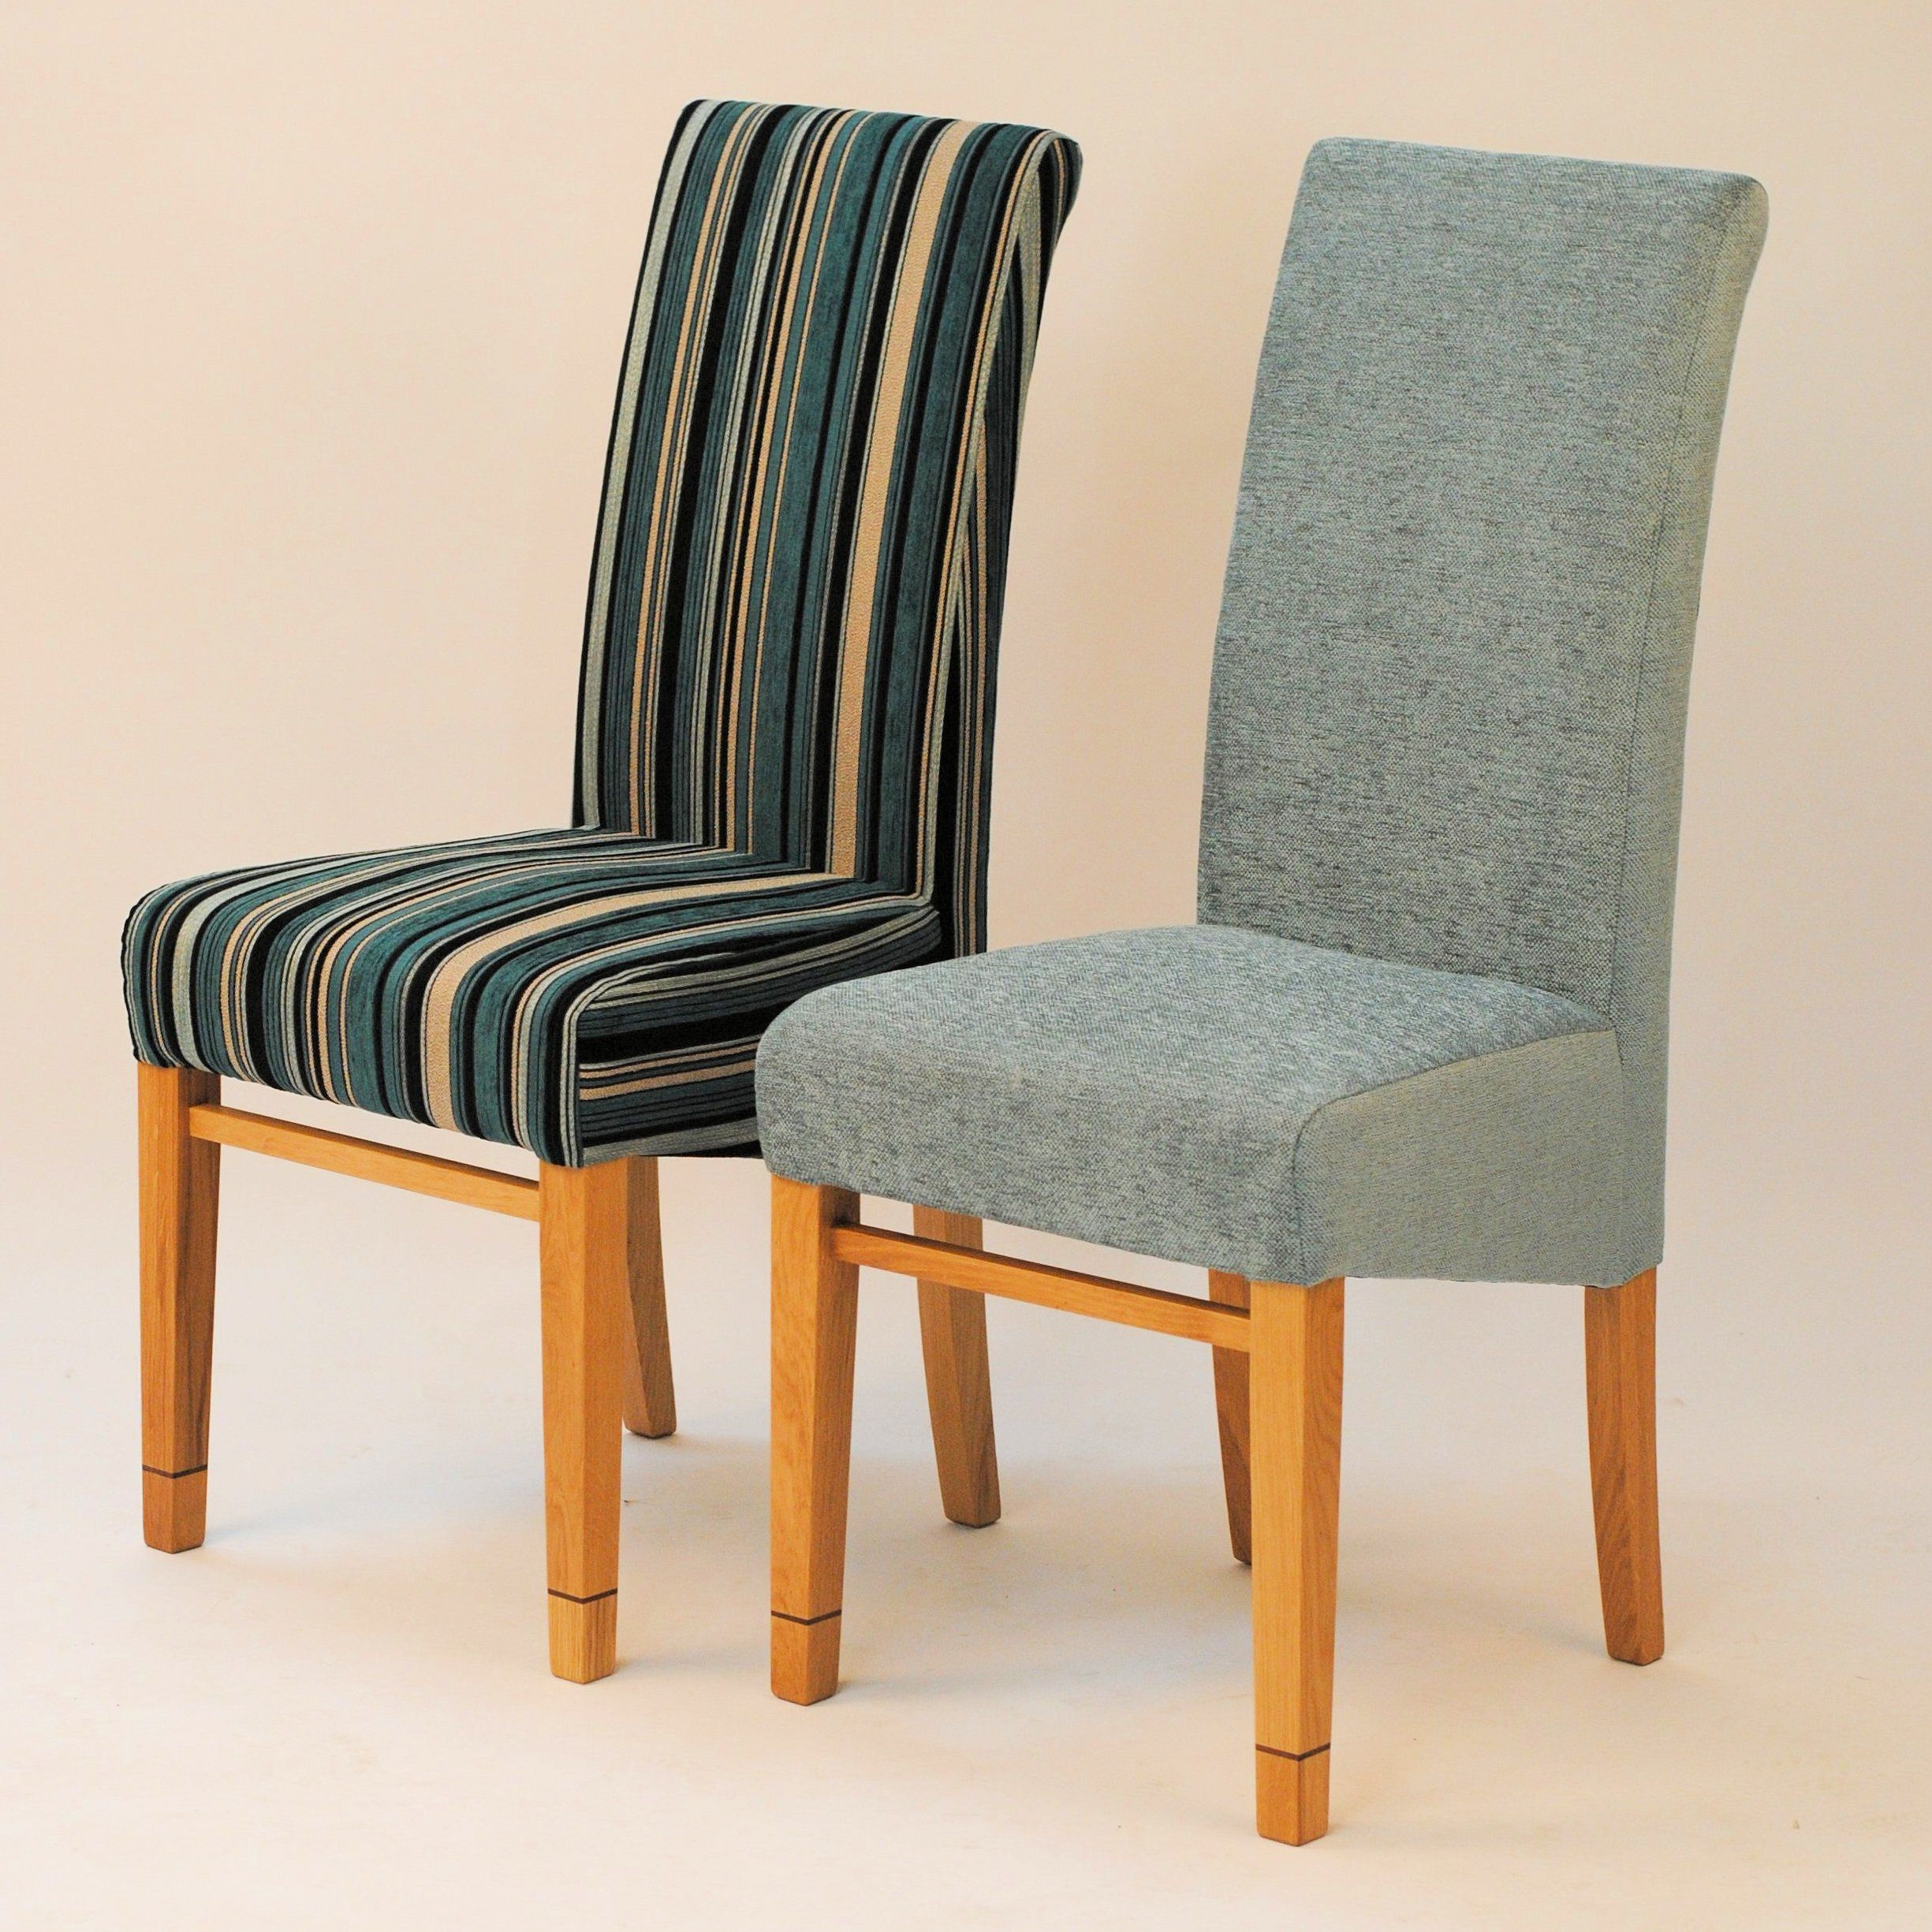 A Pair of Dining Chairs Tanner Furniture Designs